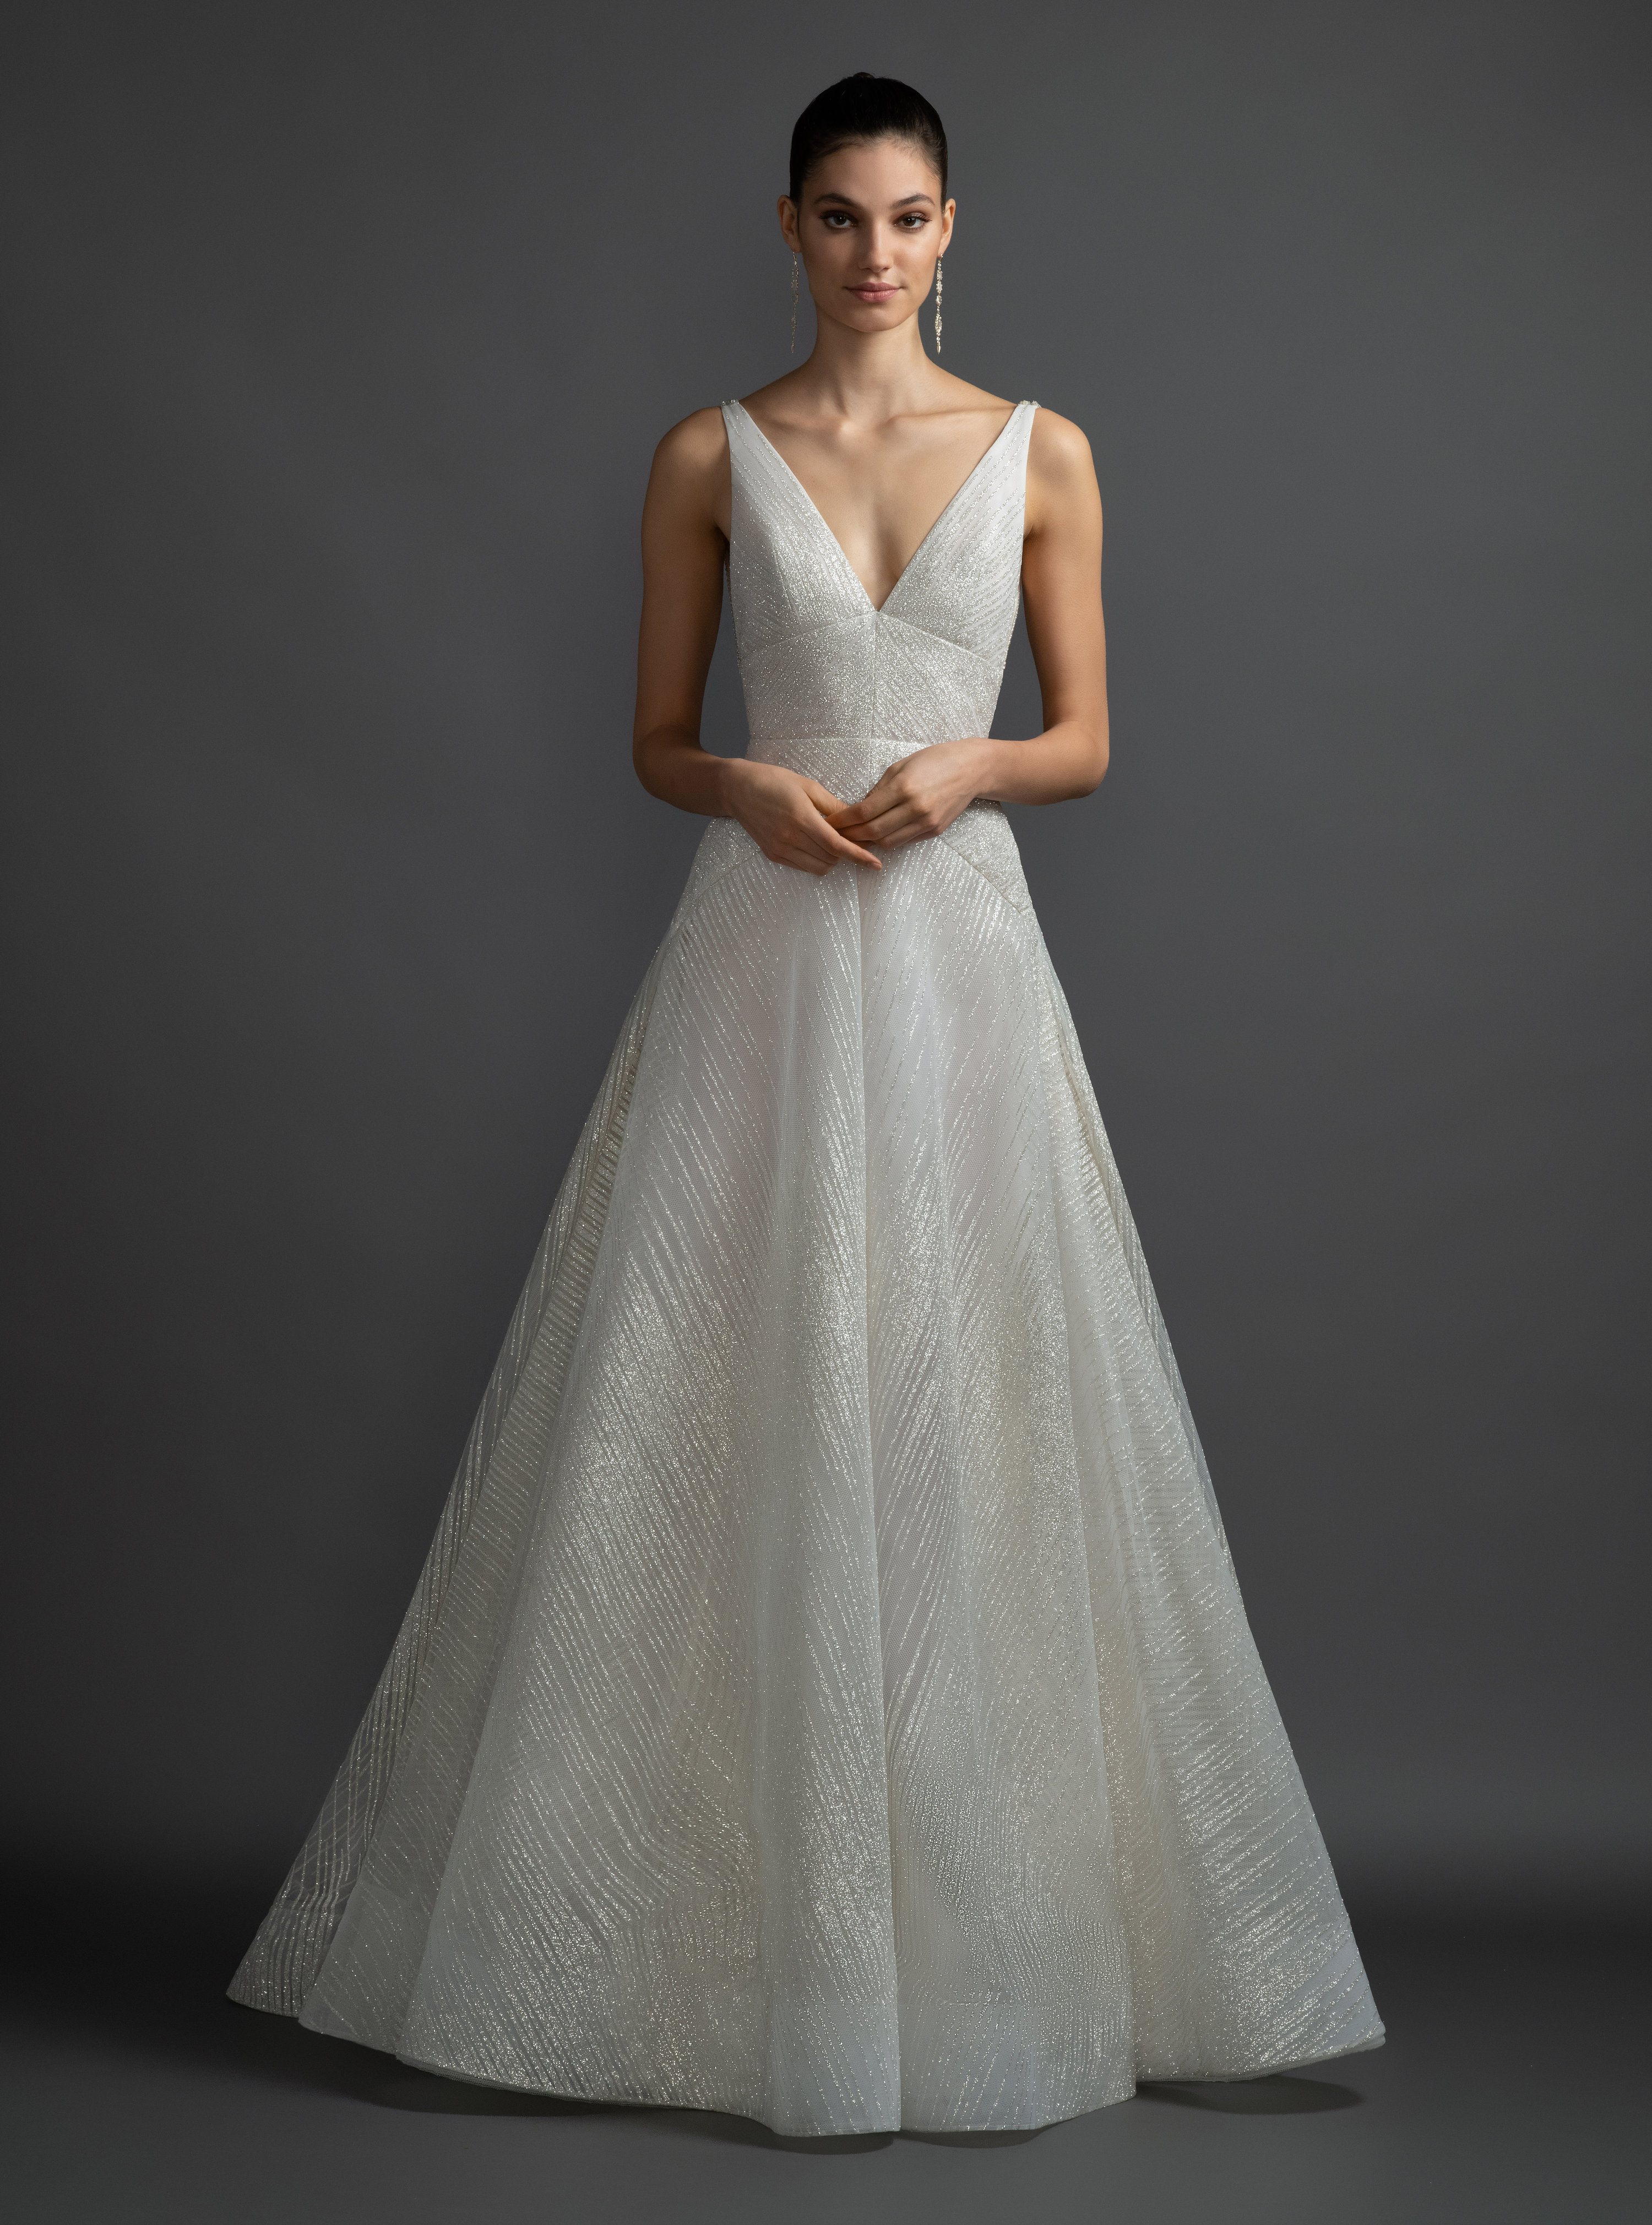 d2f664df64a0 Bridal Gowns and Wedding Dresses by JLM Couture - Style 3908 Celeste